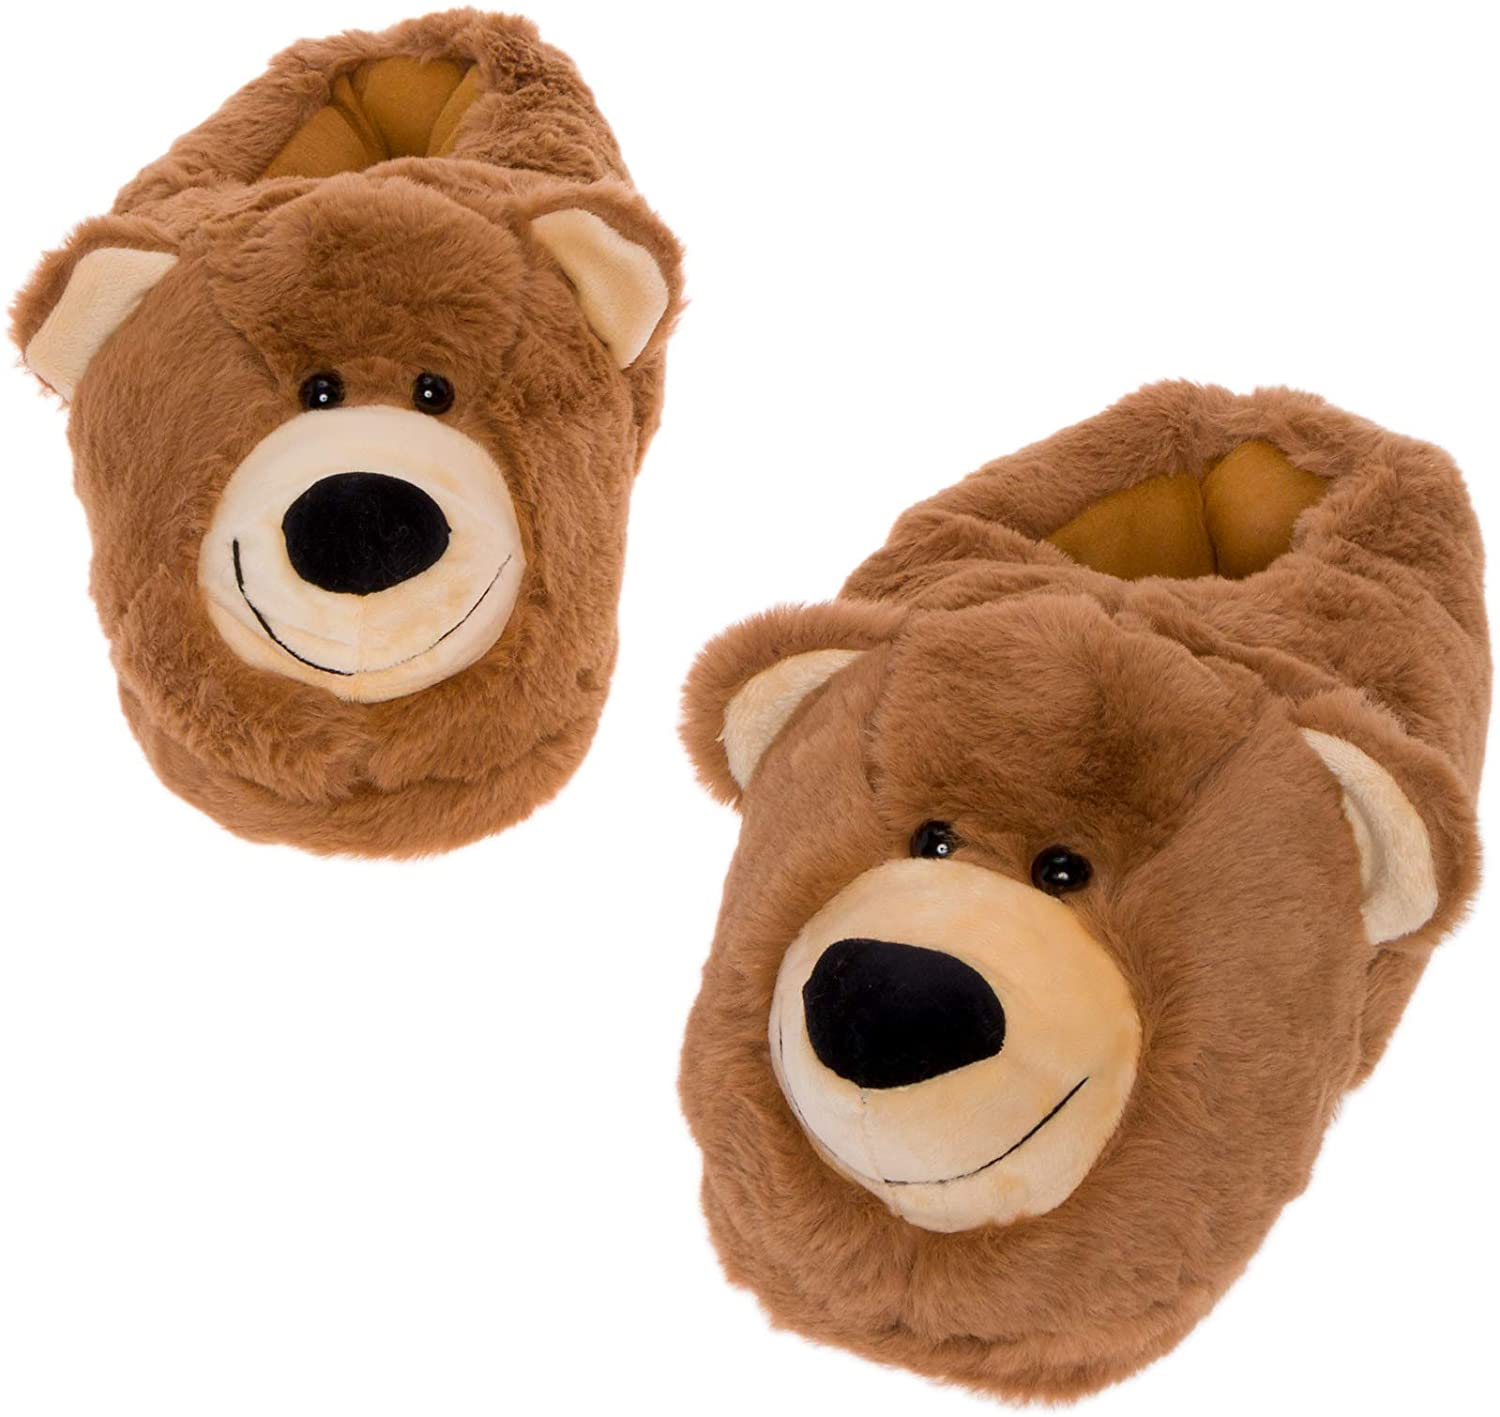 National products Silver Lilly Bear Face Slippers Under blast sales - House Animal Plush Sho Novelty